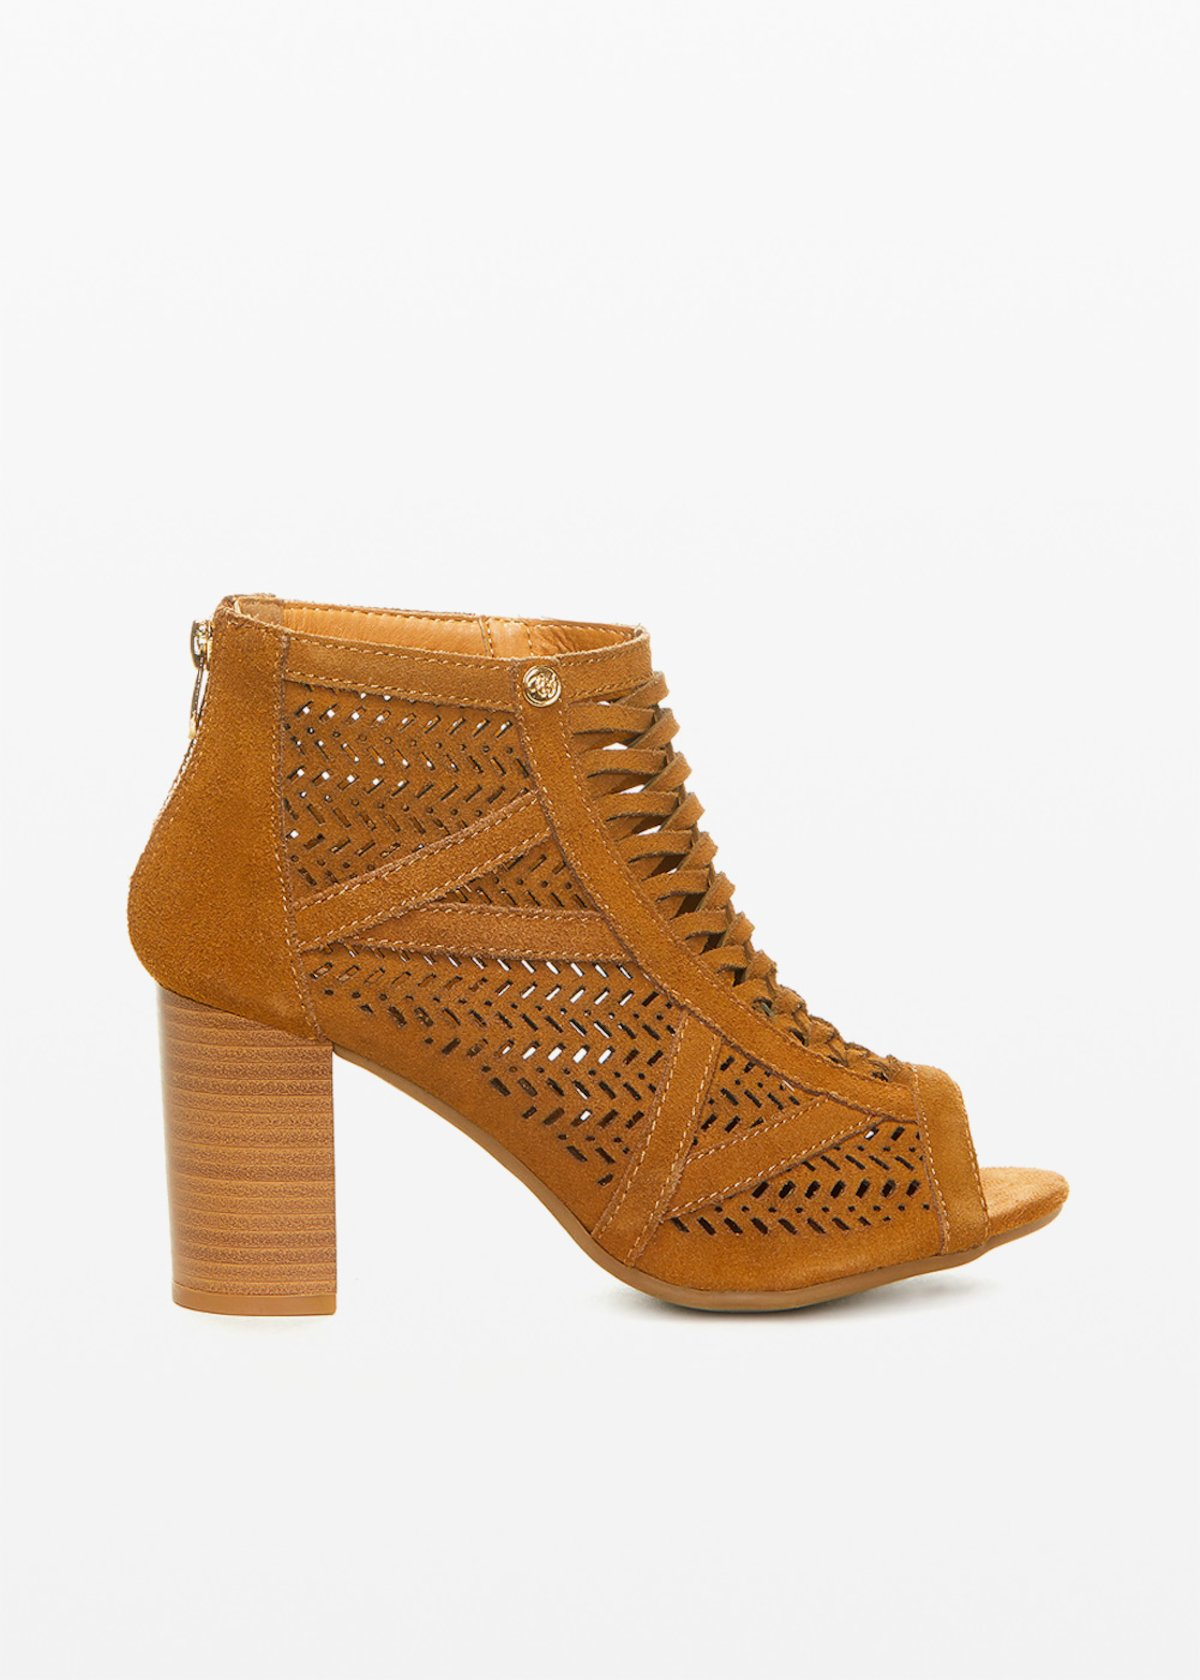 Real cow suede Sharyl shoes perforated design - Tobacco - Woman